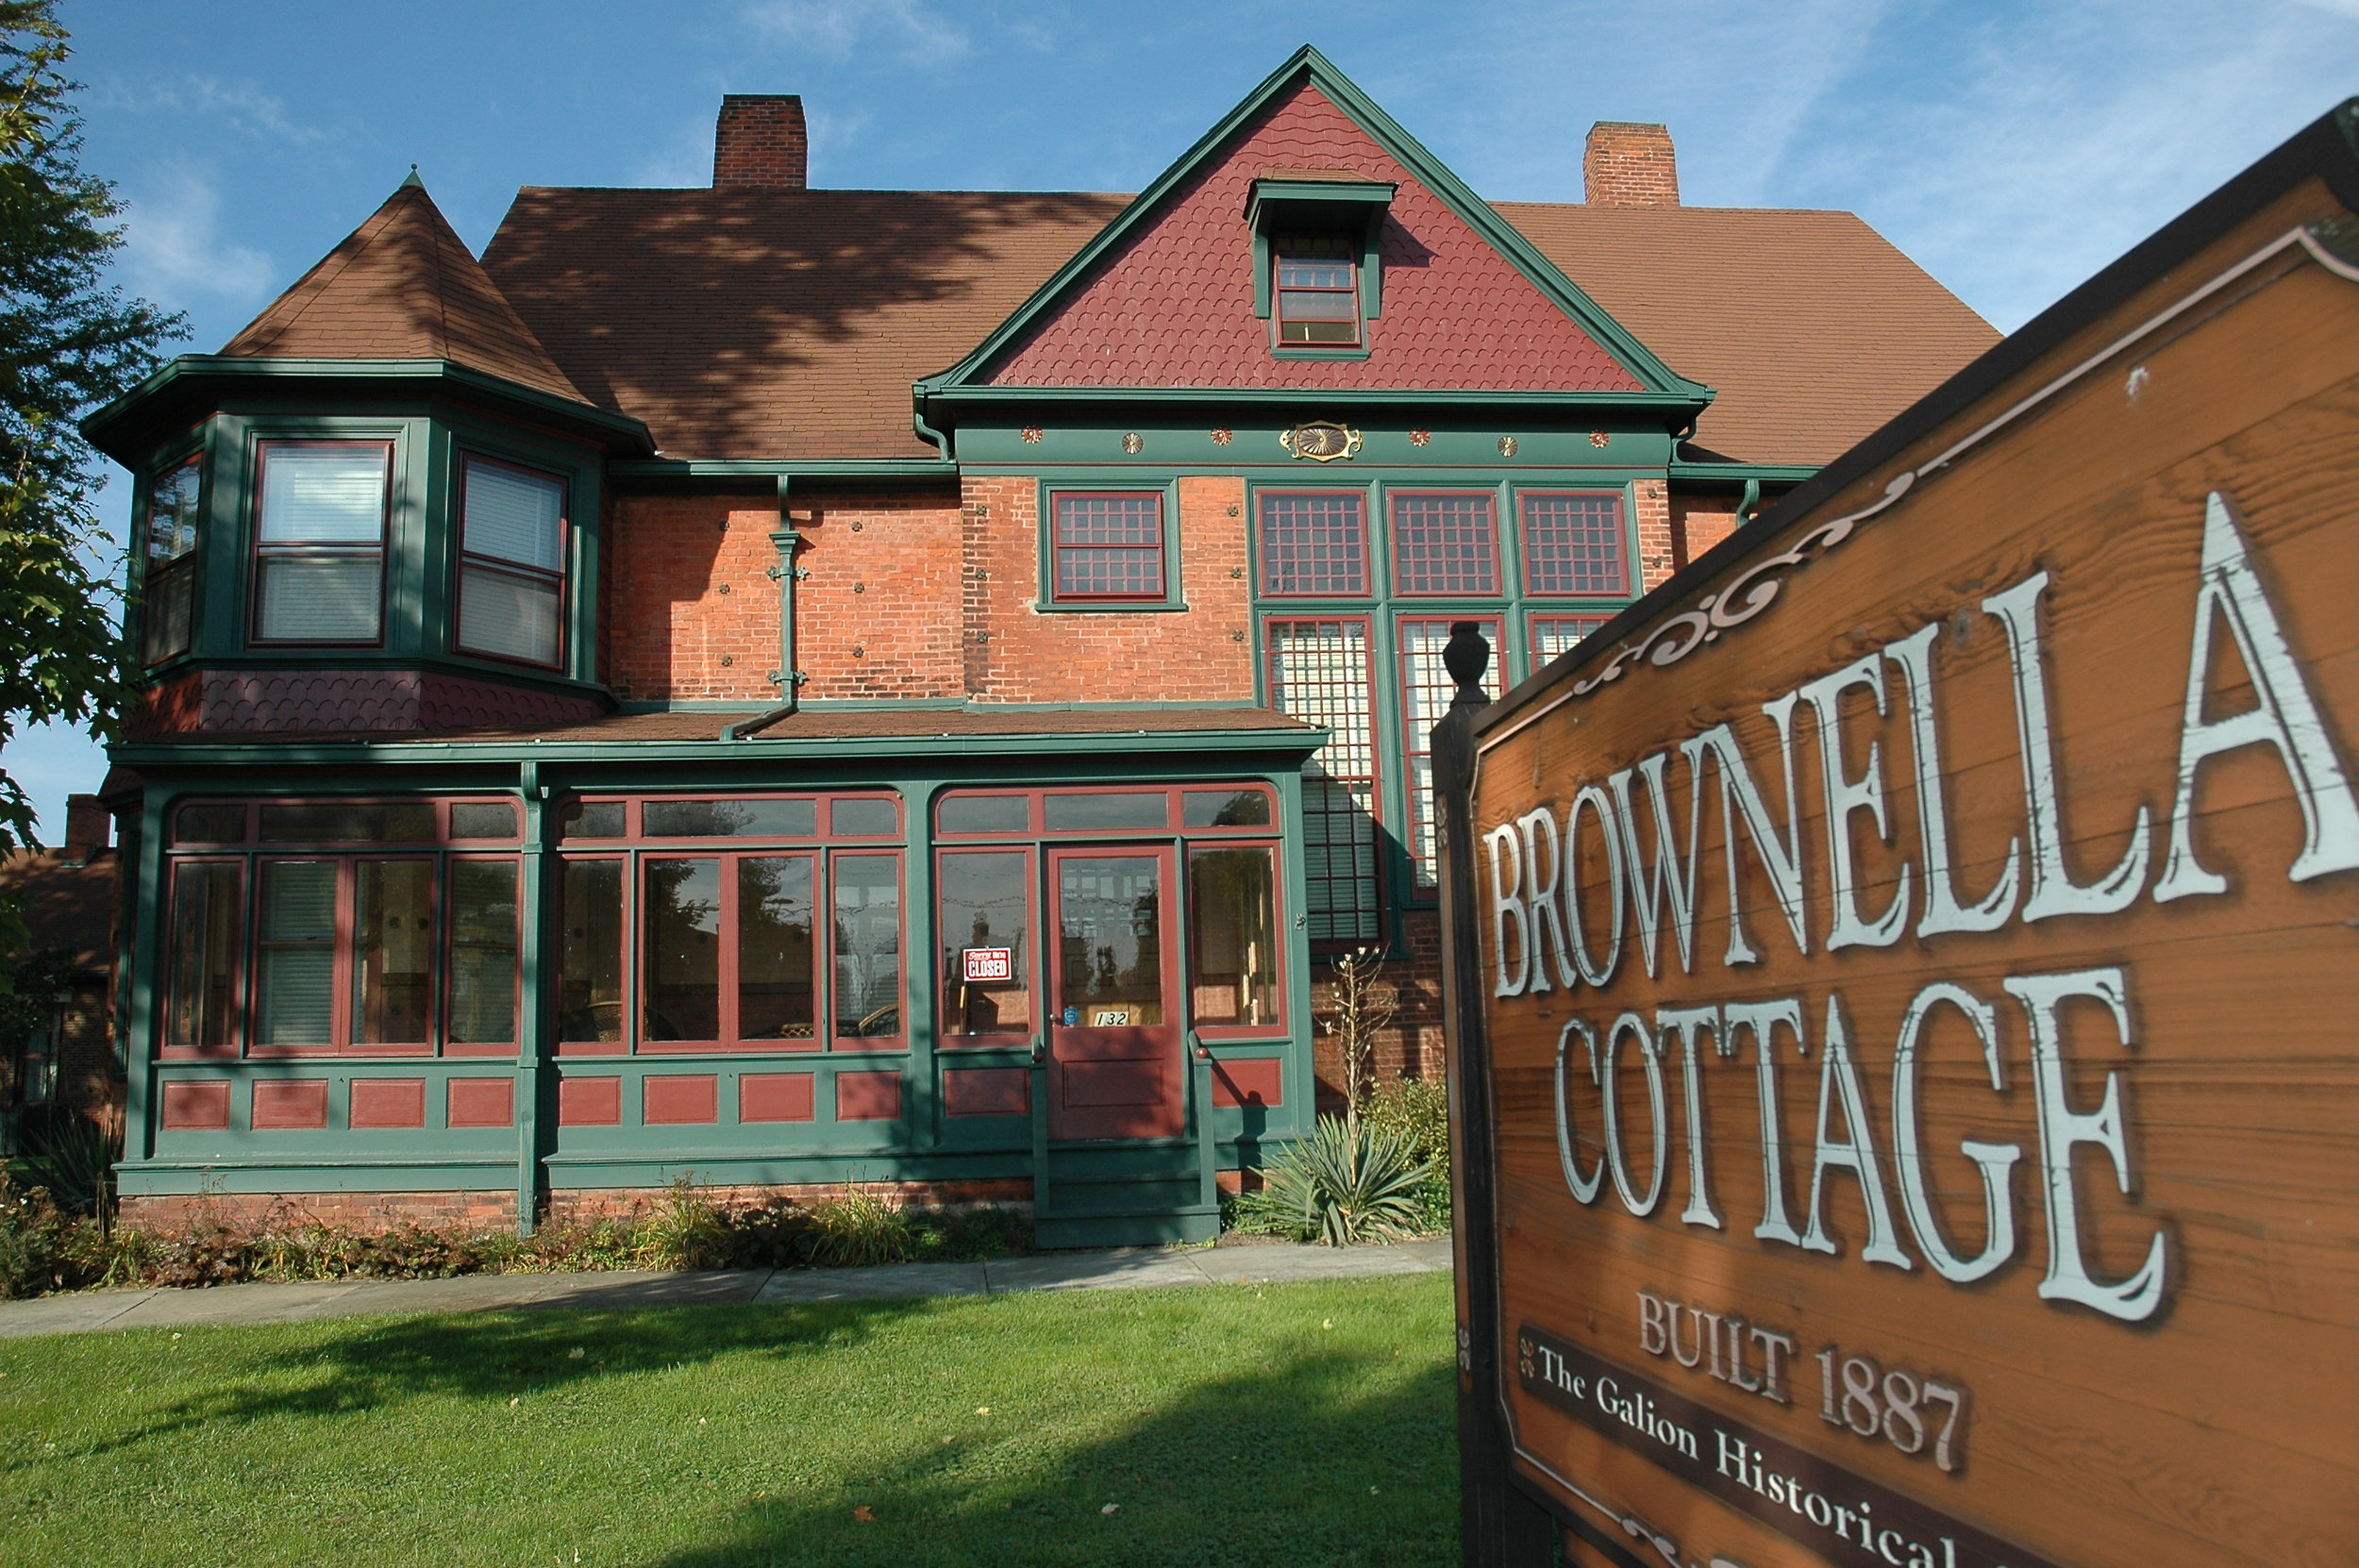 Brownella Cottage - 132 South Union StreetBuilt in 1887, Brownella Cottage was the home of Bishop William Montgomery Brown and his wife Ella. Brown was a nationally-known religious and political leader in late 19th and early 20th century America and a community benefactor. Today, it represents a rare combination of an intriguing family story and original furnishings. Owned and operated by the Galion Historical Society, the house, carriage house/museum, and Historic Grace Church are open for tours. Click here for more information.